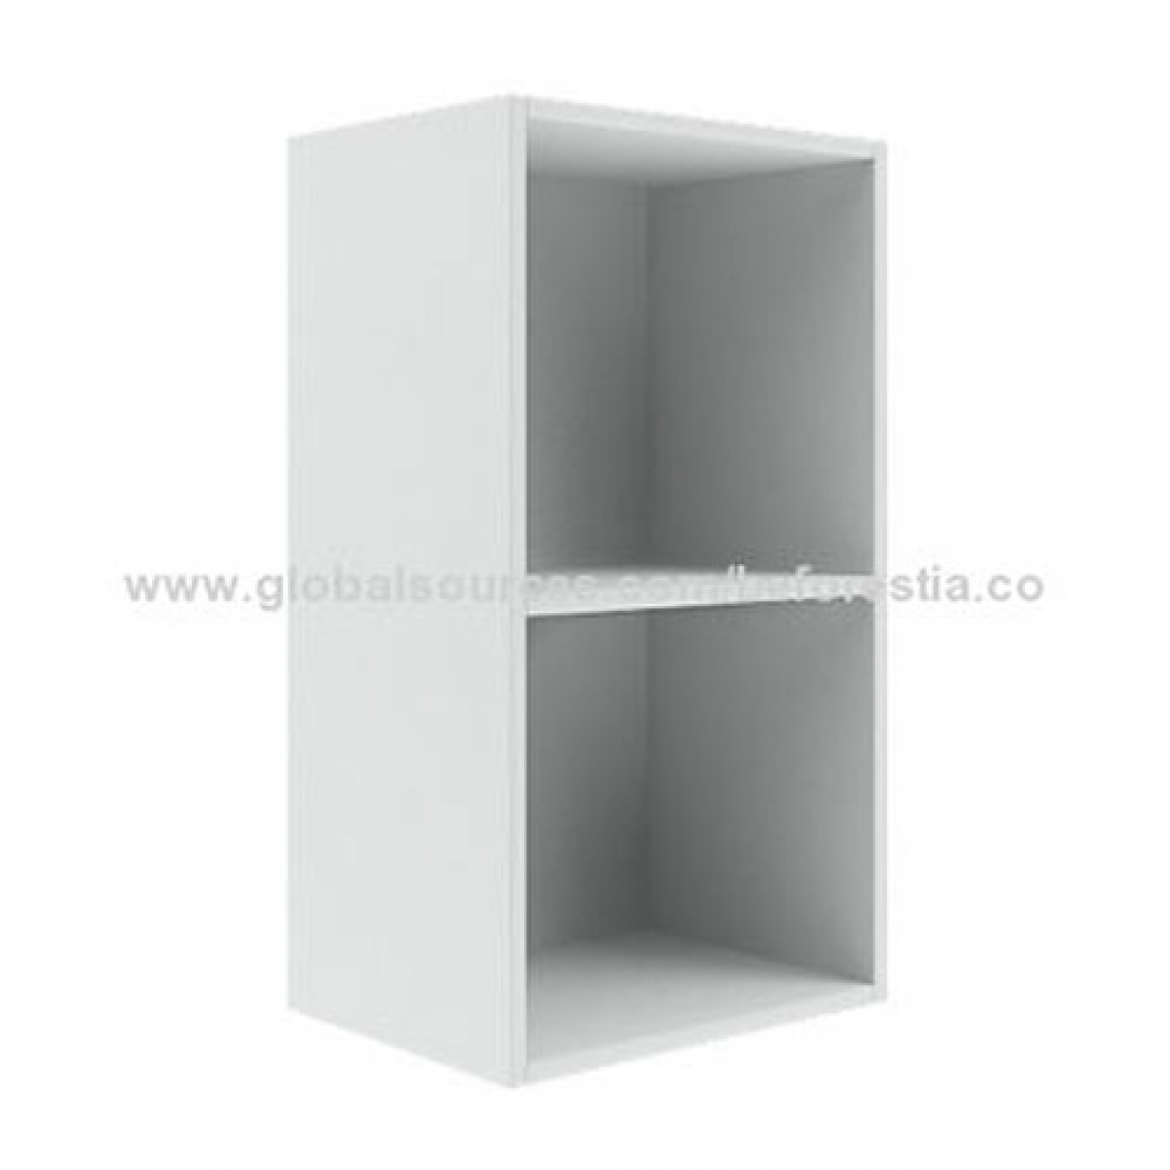 150 mm wall hung cabinet [1 door]